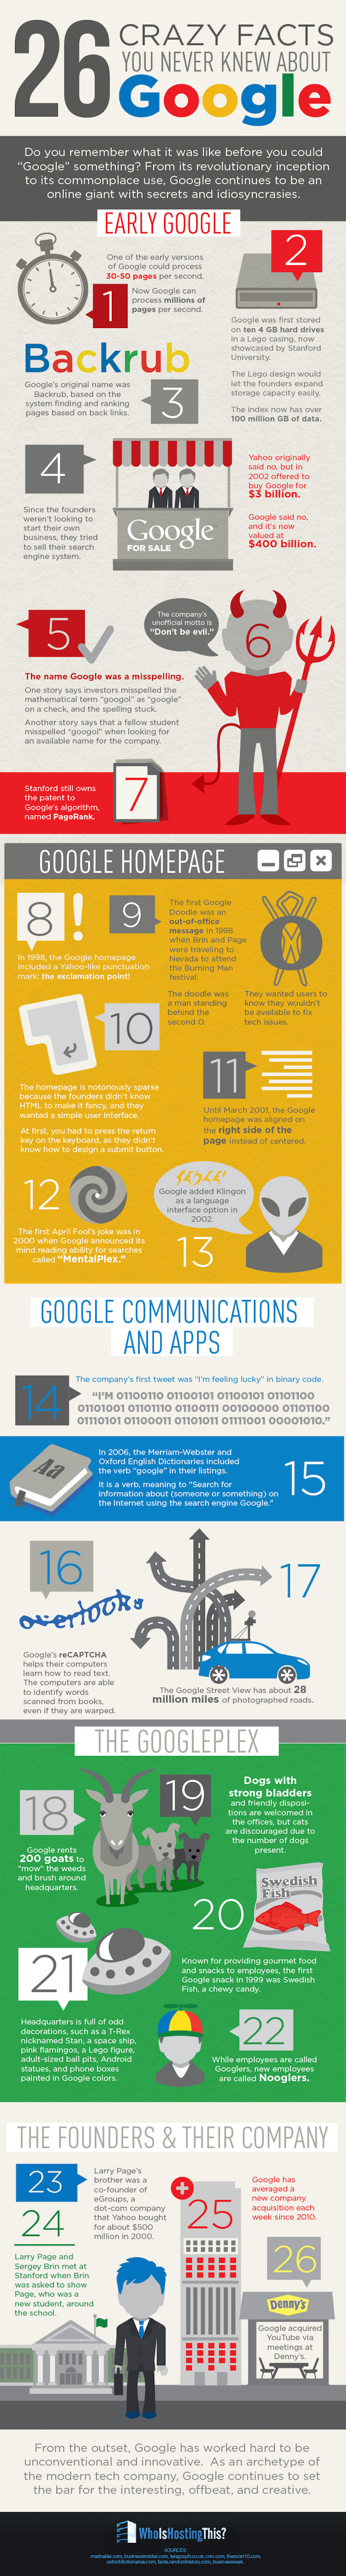 crazy-facts-google